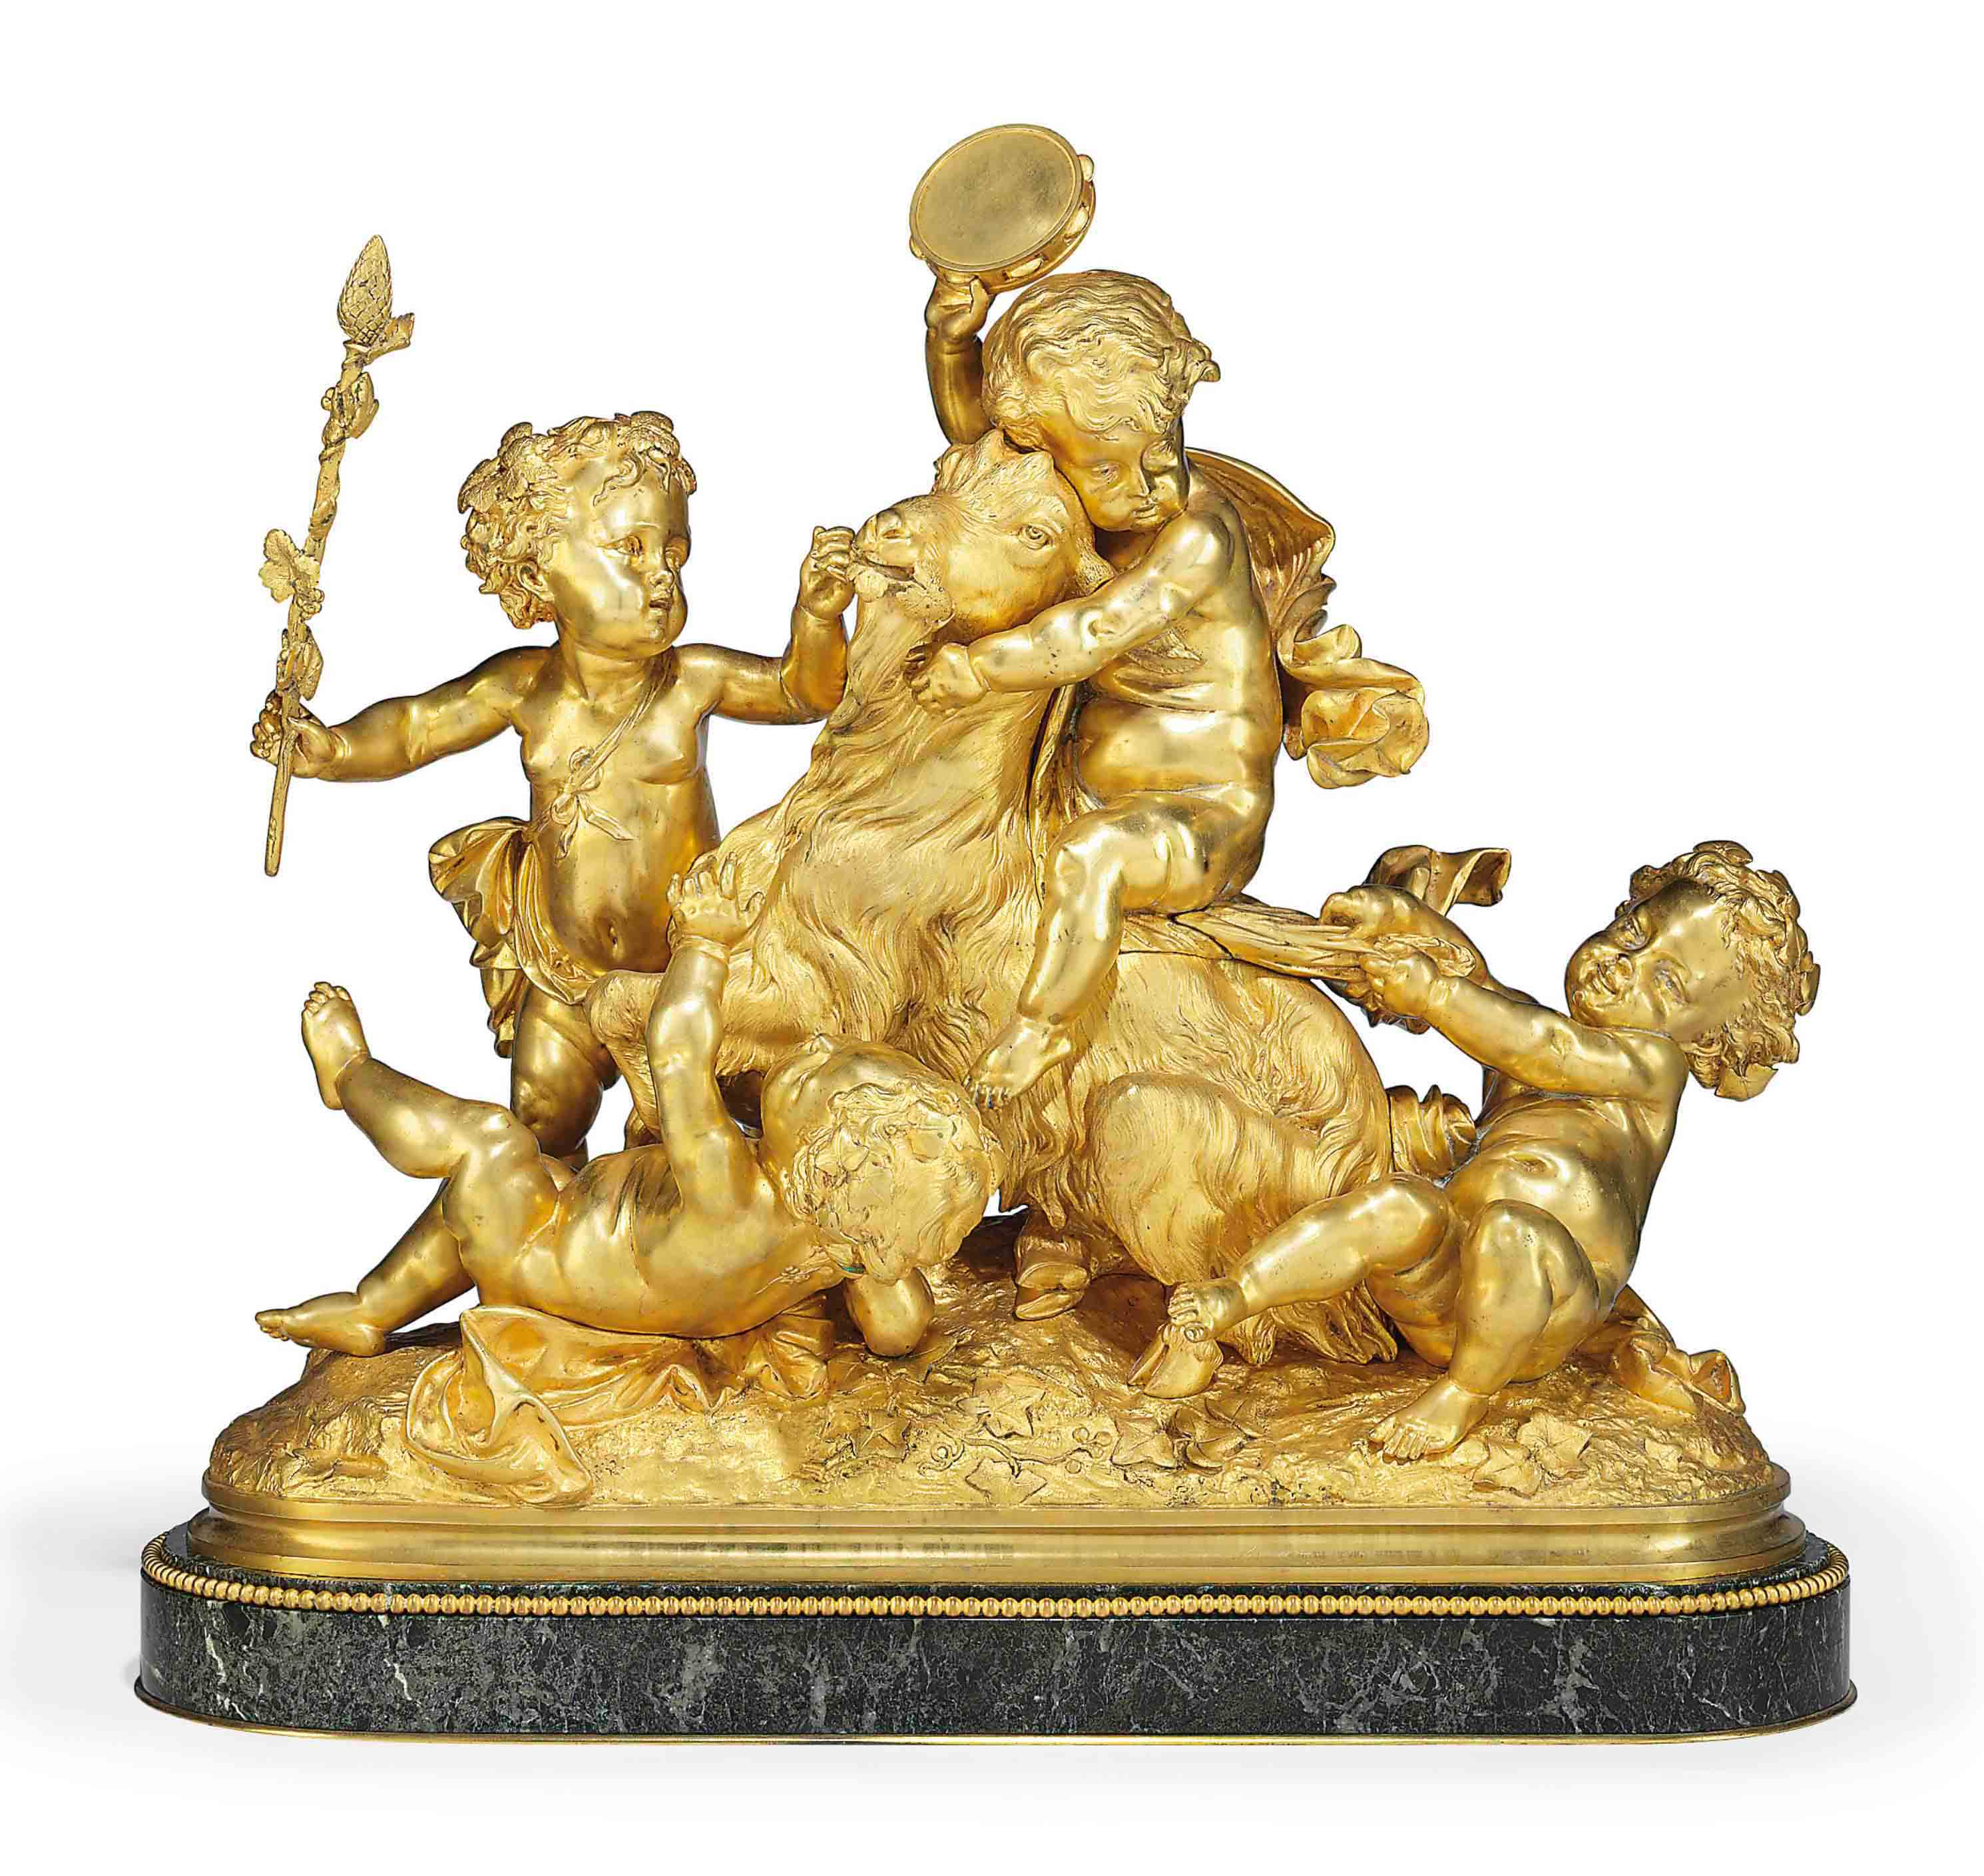 A FRENCH GILT-BRONZE GROUP OF BACCHIC PUTTI